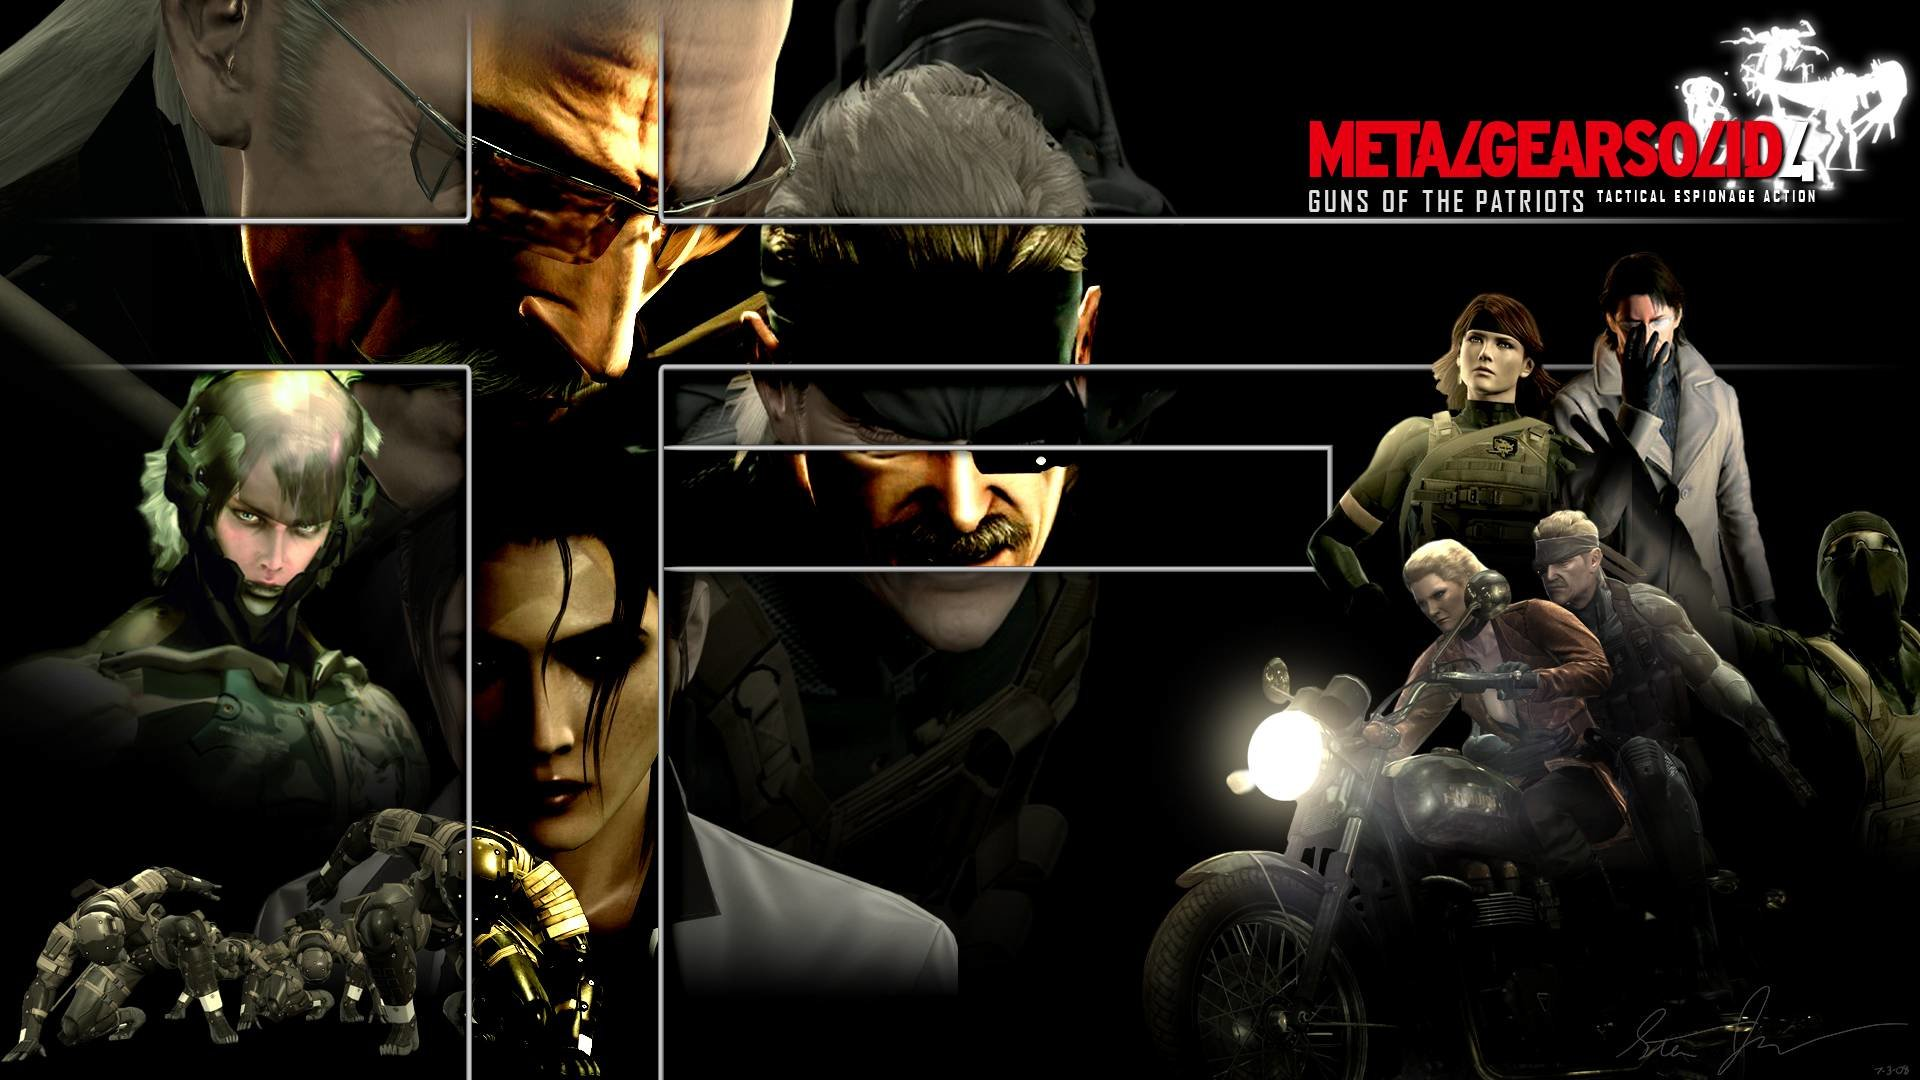 Metal Gear Solid 4 Guns Of The Patriots Mgs 4 Wallpapers